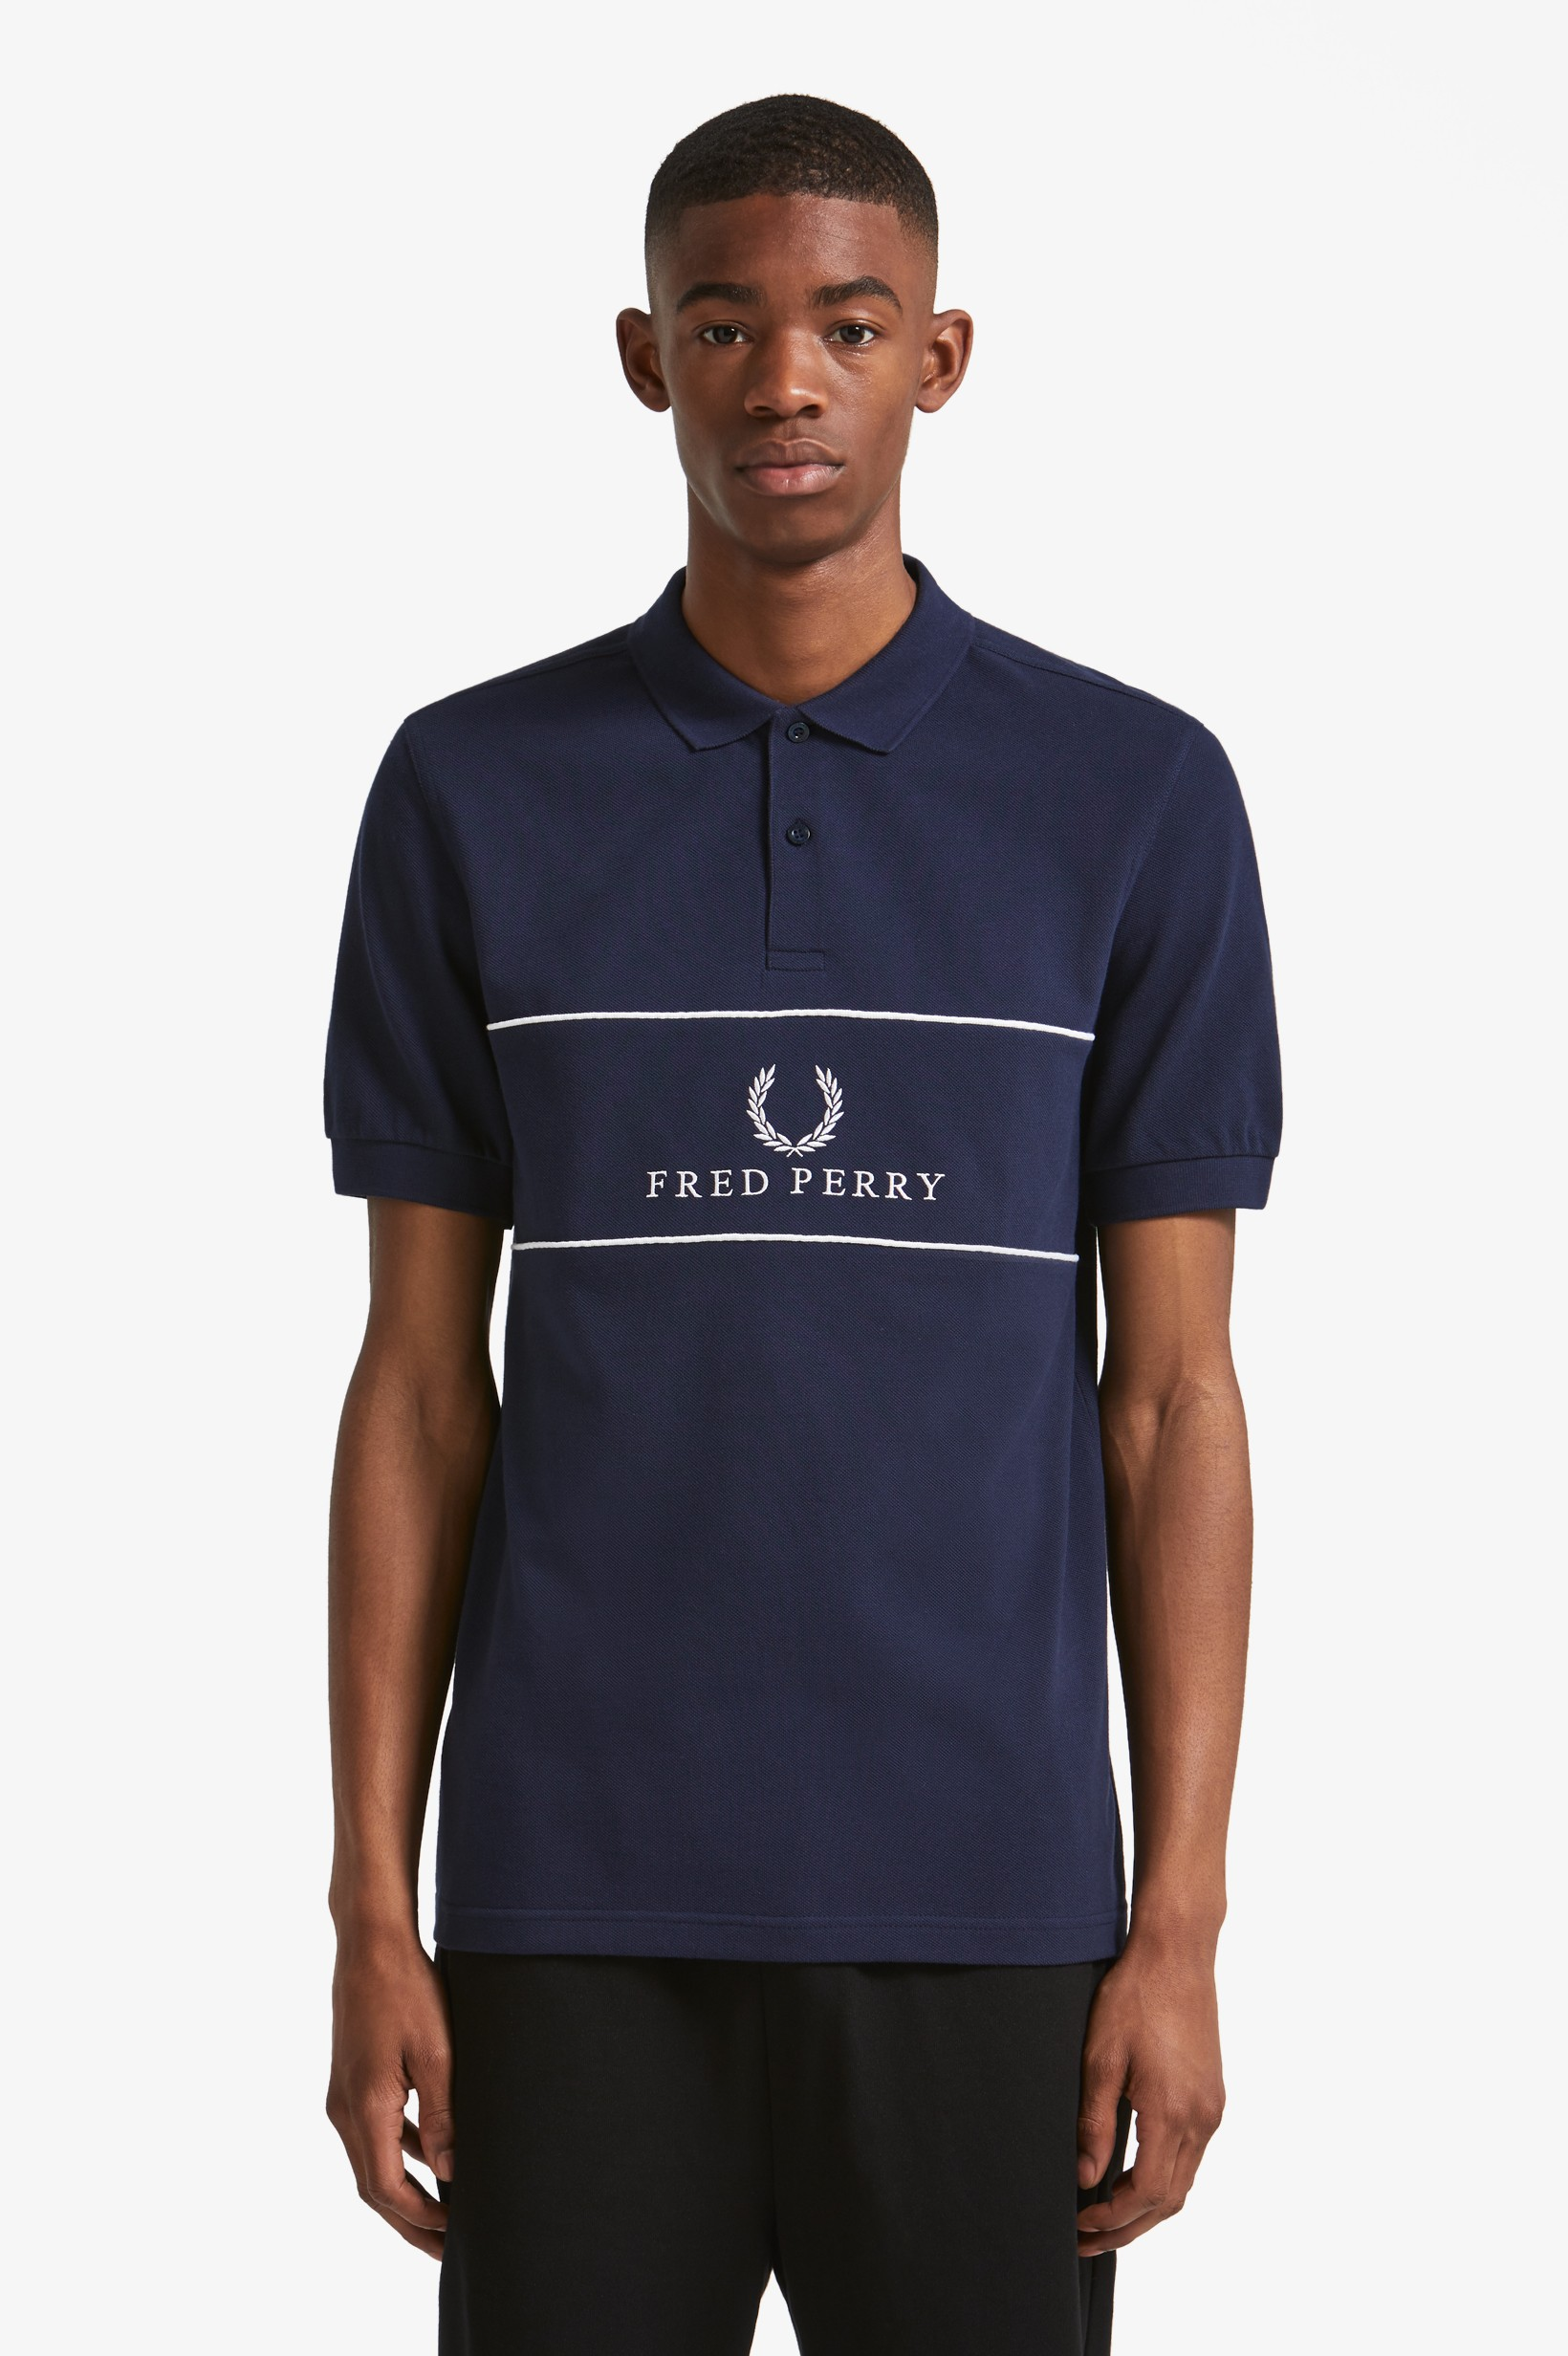 Fred Perry Carbon Blue Sports Authentic Piped Polo Shirt